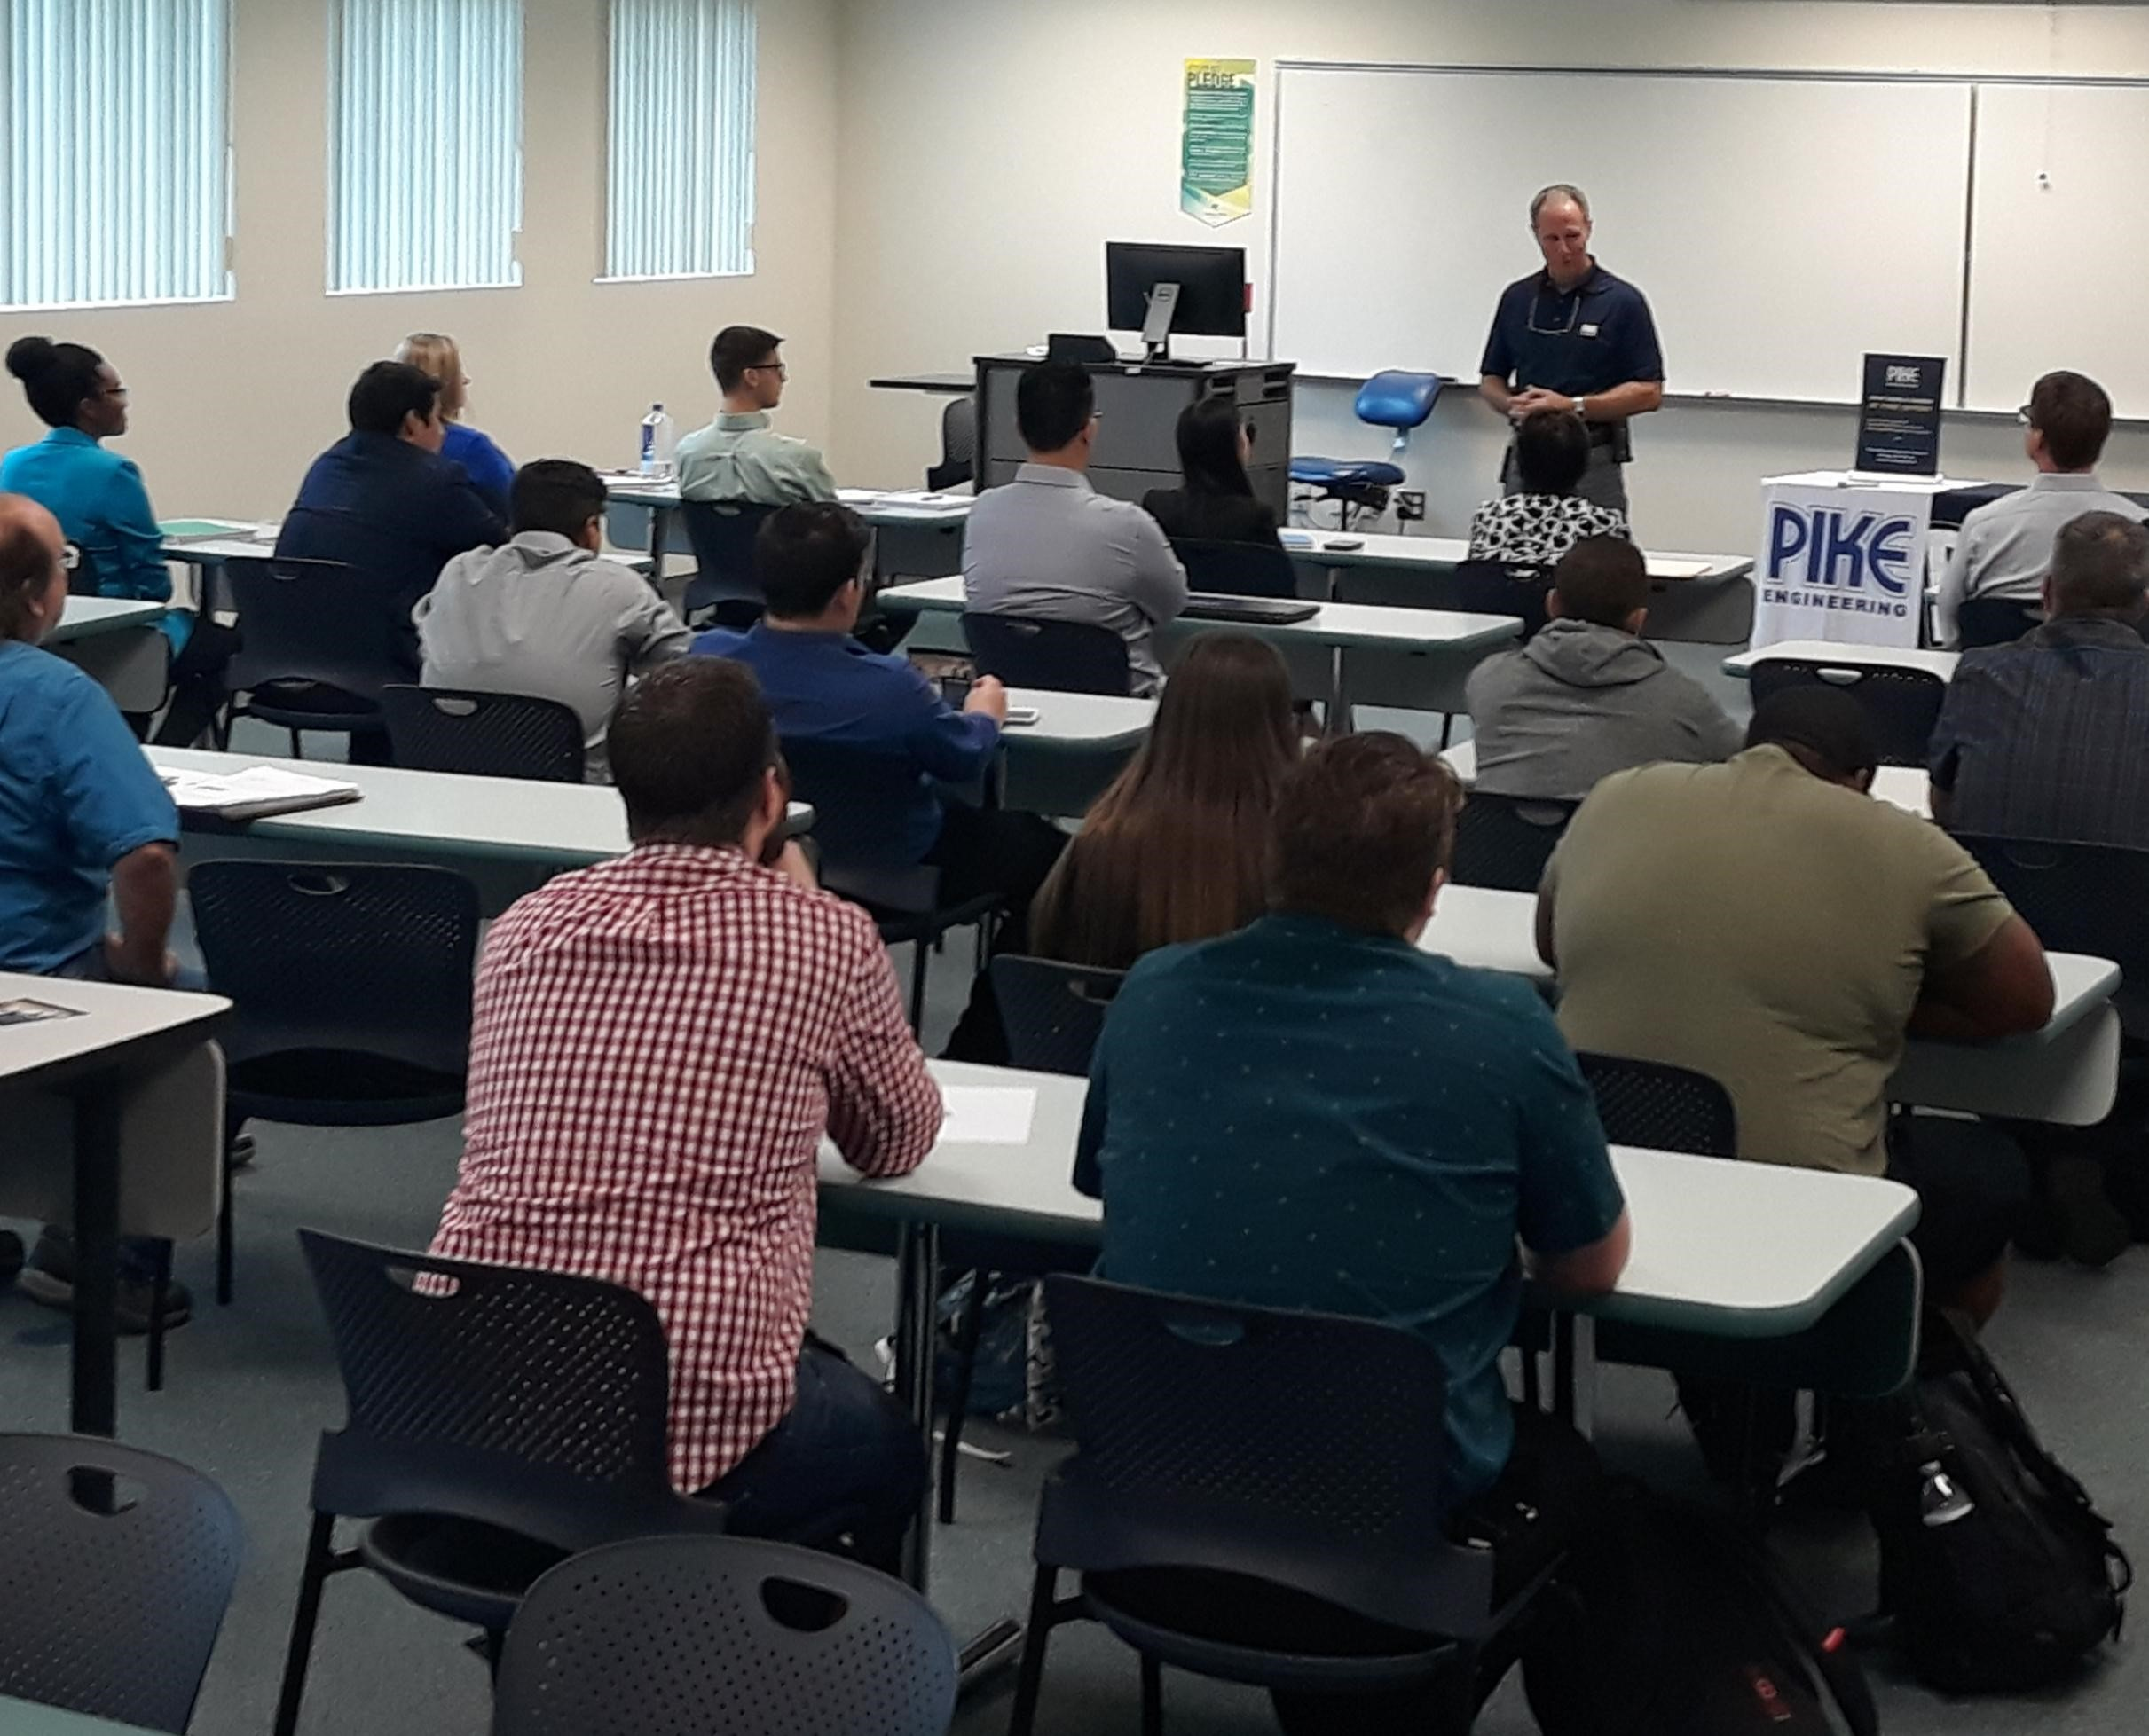 Pike Corporation is hiring and came to present and recruit PBSC students